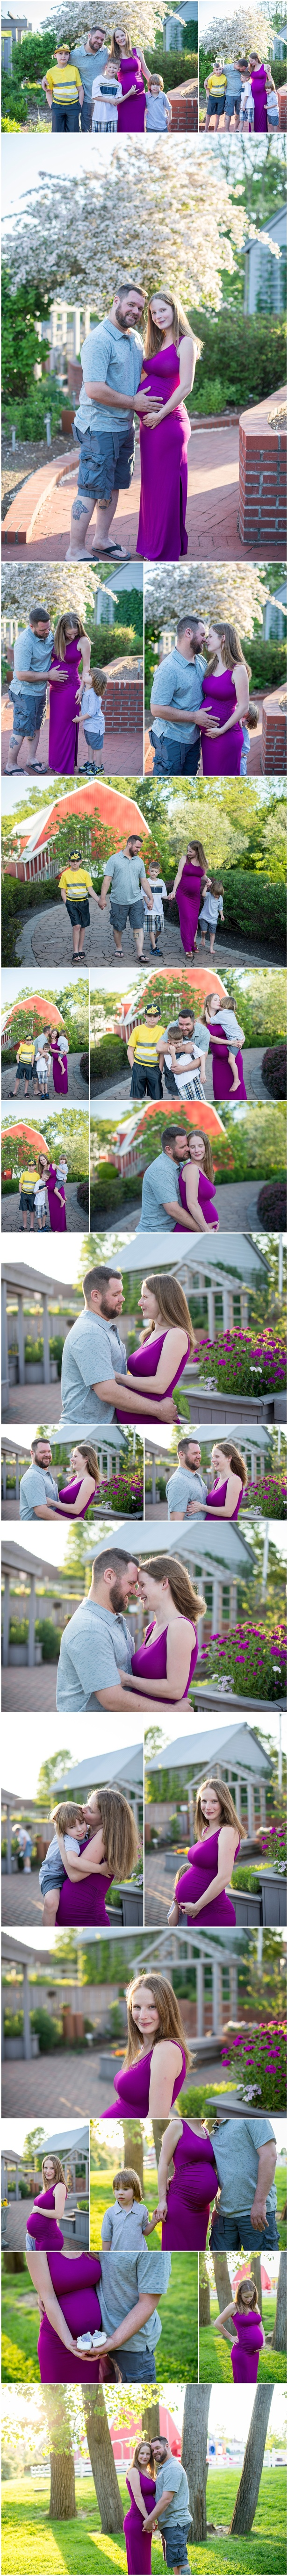 Gantz Park Grove City Photo session